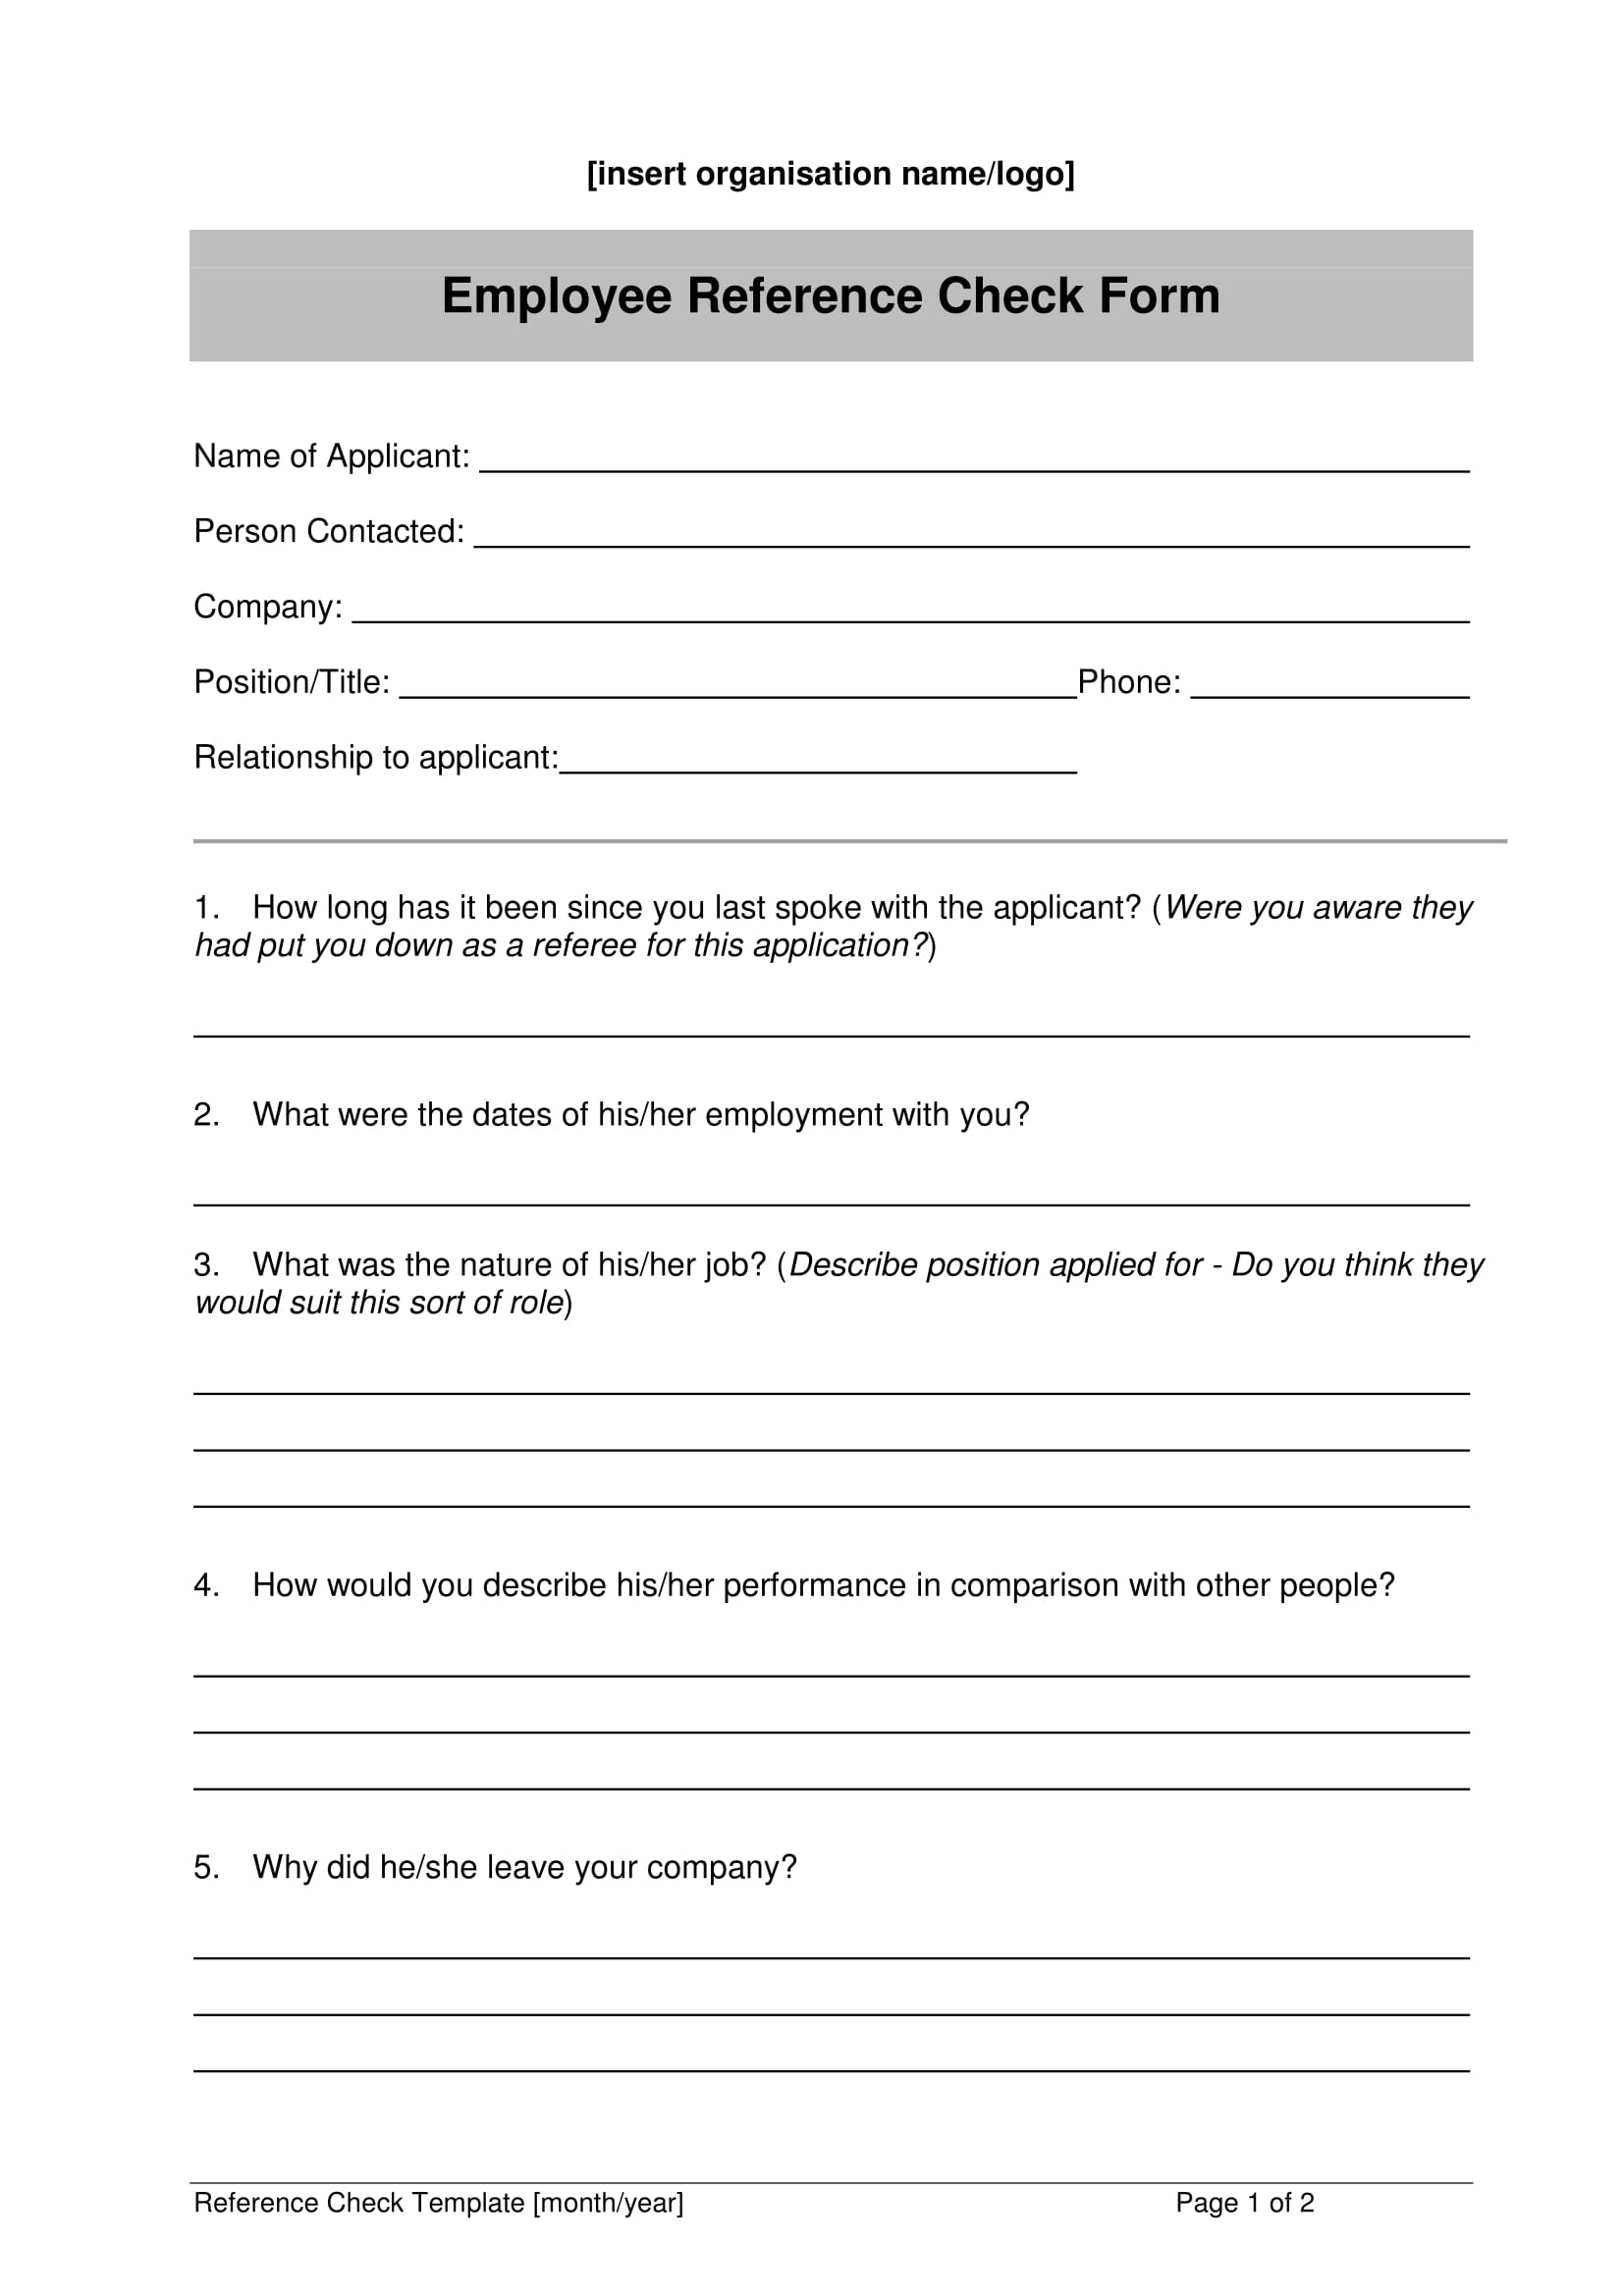 employee reference check form 1